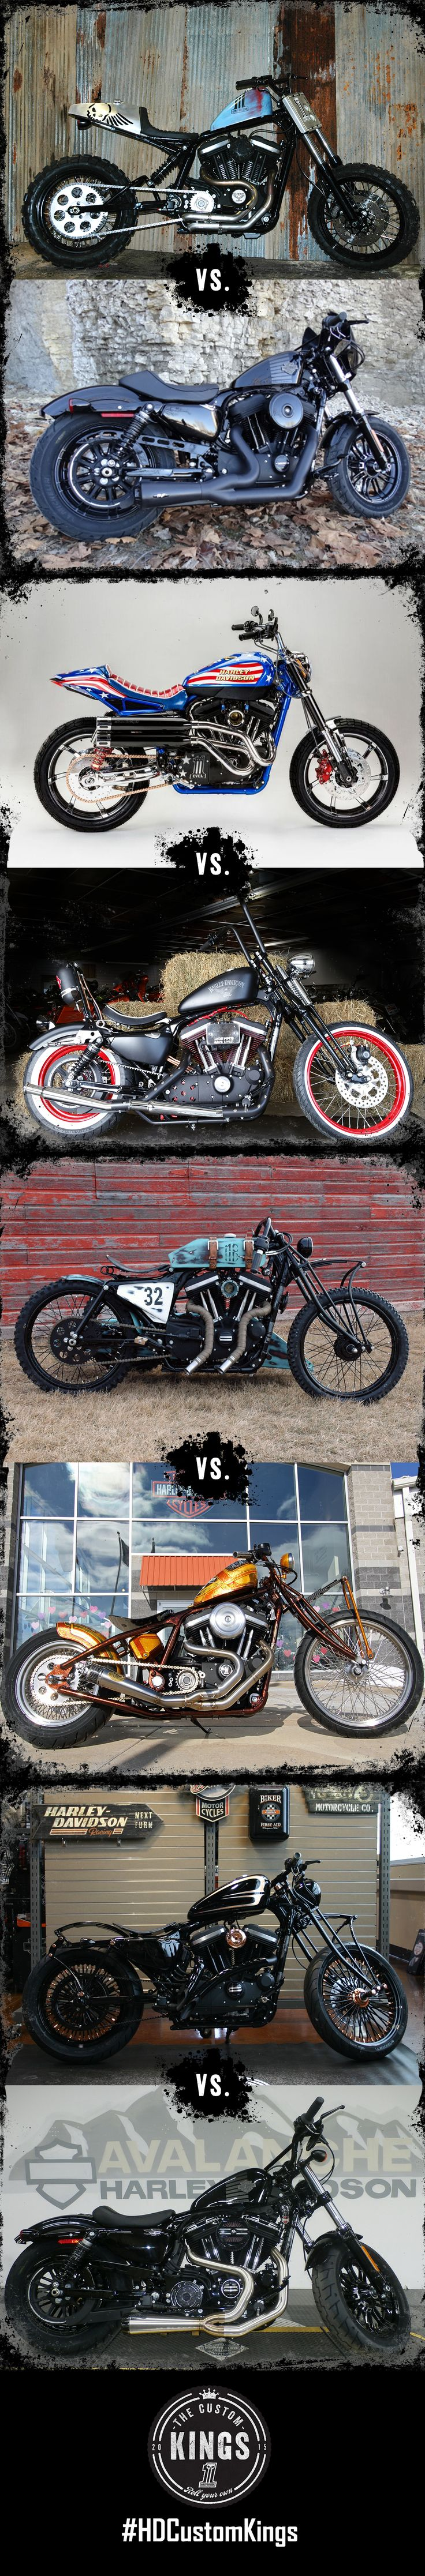 Harley funny biker quotes bar hopper challenge com - Vote For The 64 Sportsters Built By The Customization Experts At H D Dealers Across The U S